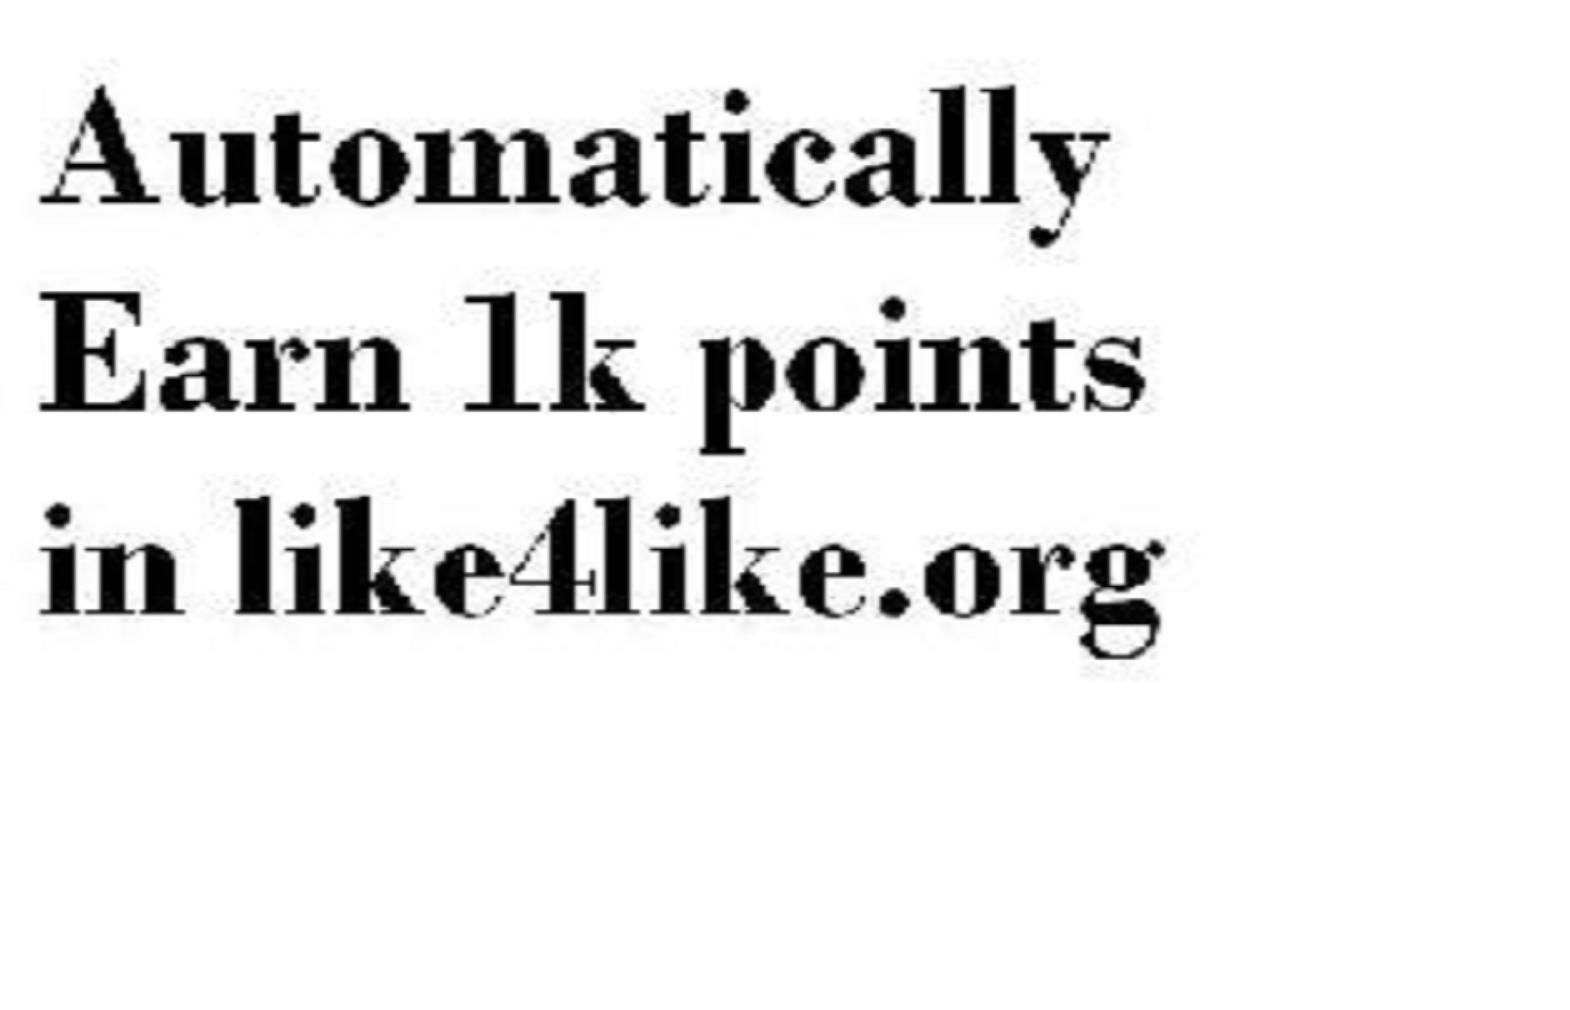 Automatically Earn points in like4like.org software